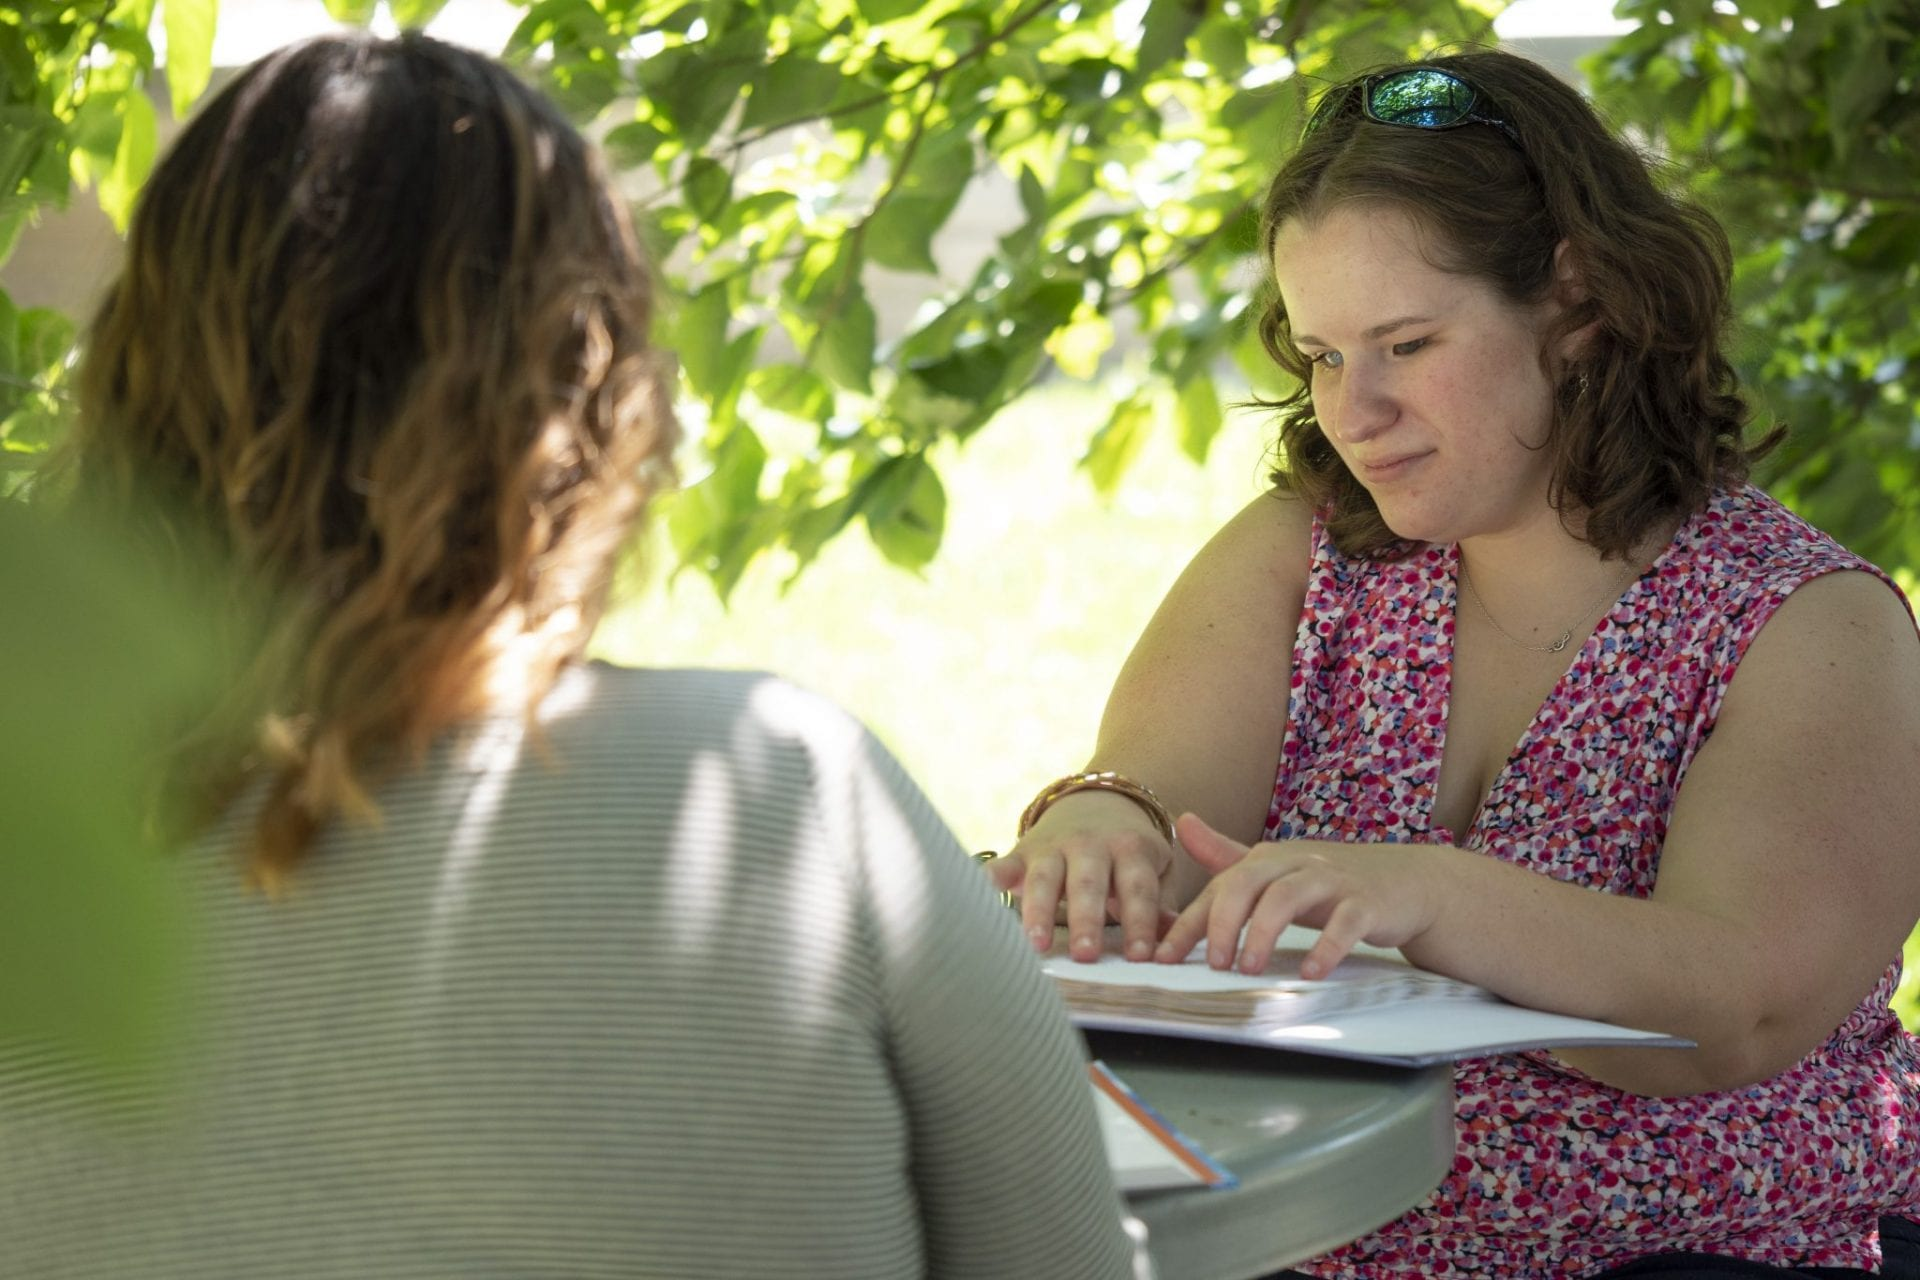 A student reads a braille textbook while sitting outside under a tree with a friend